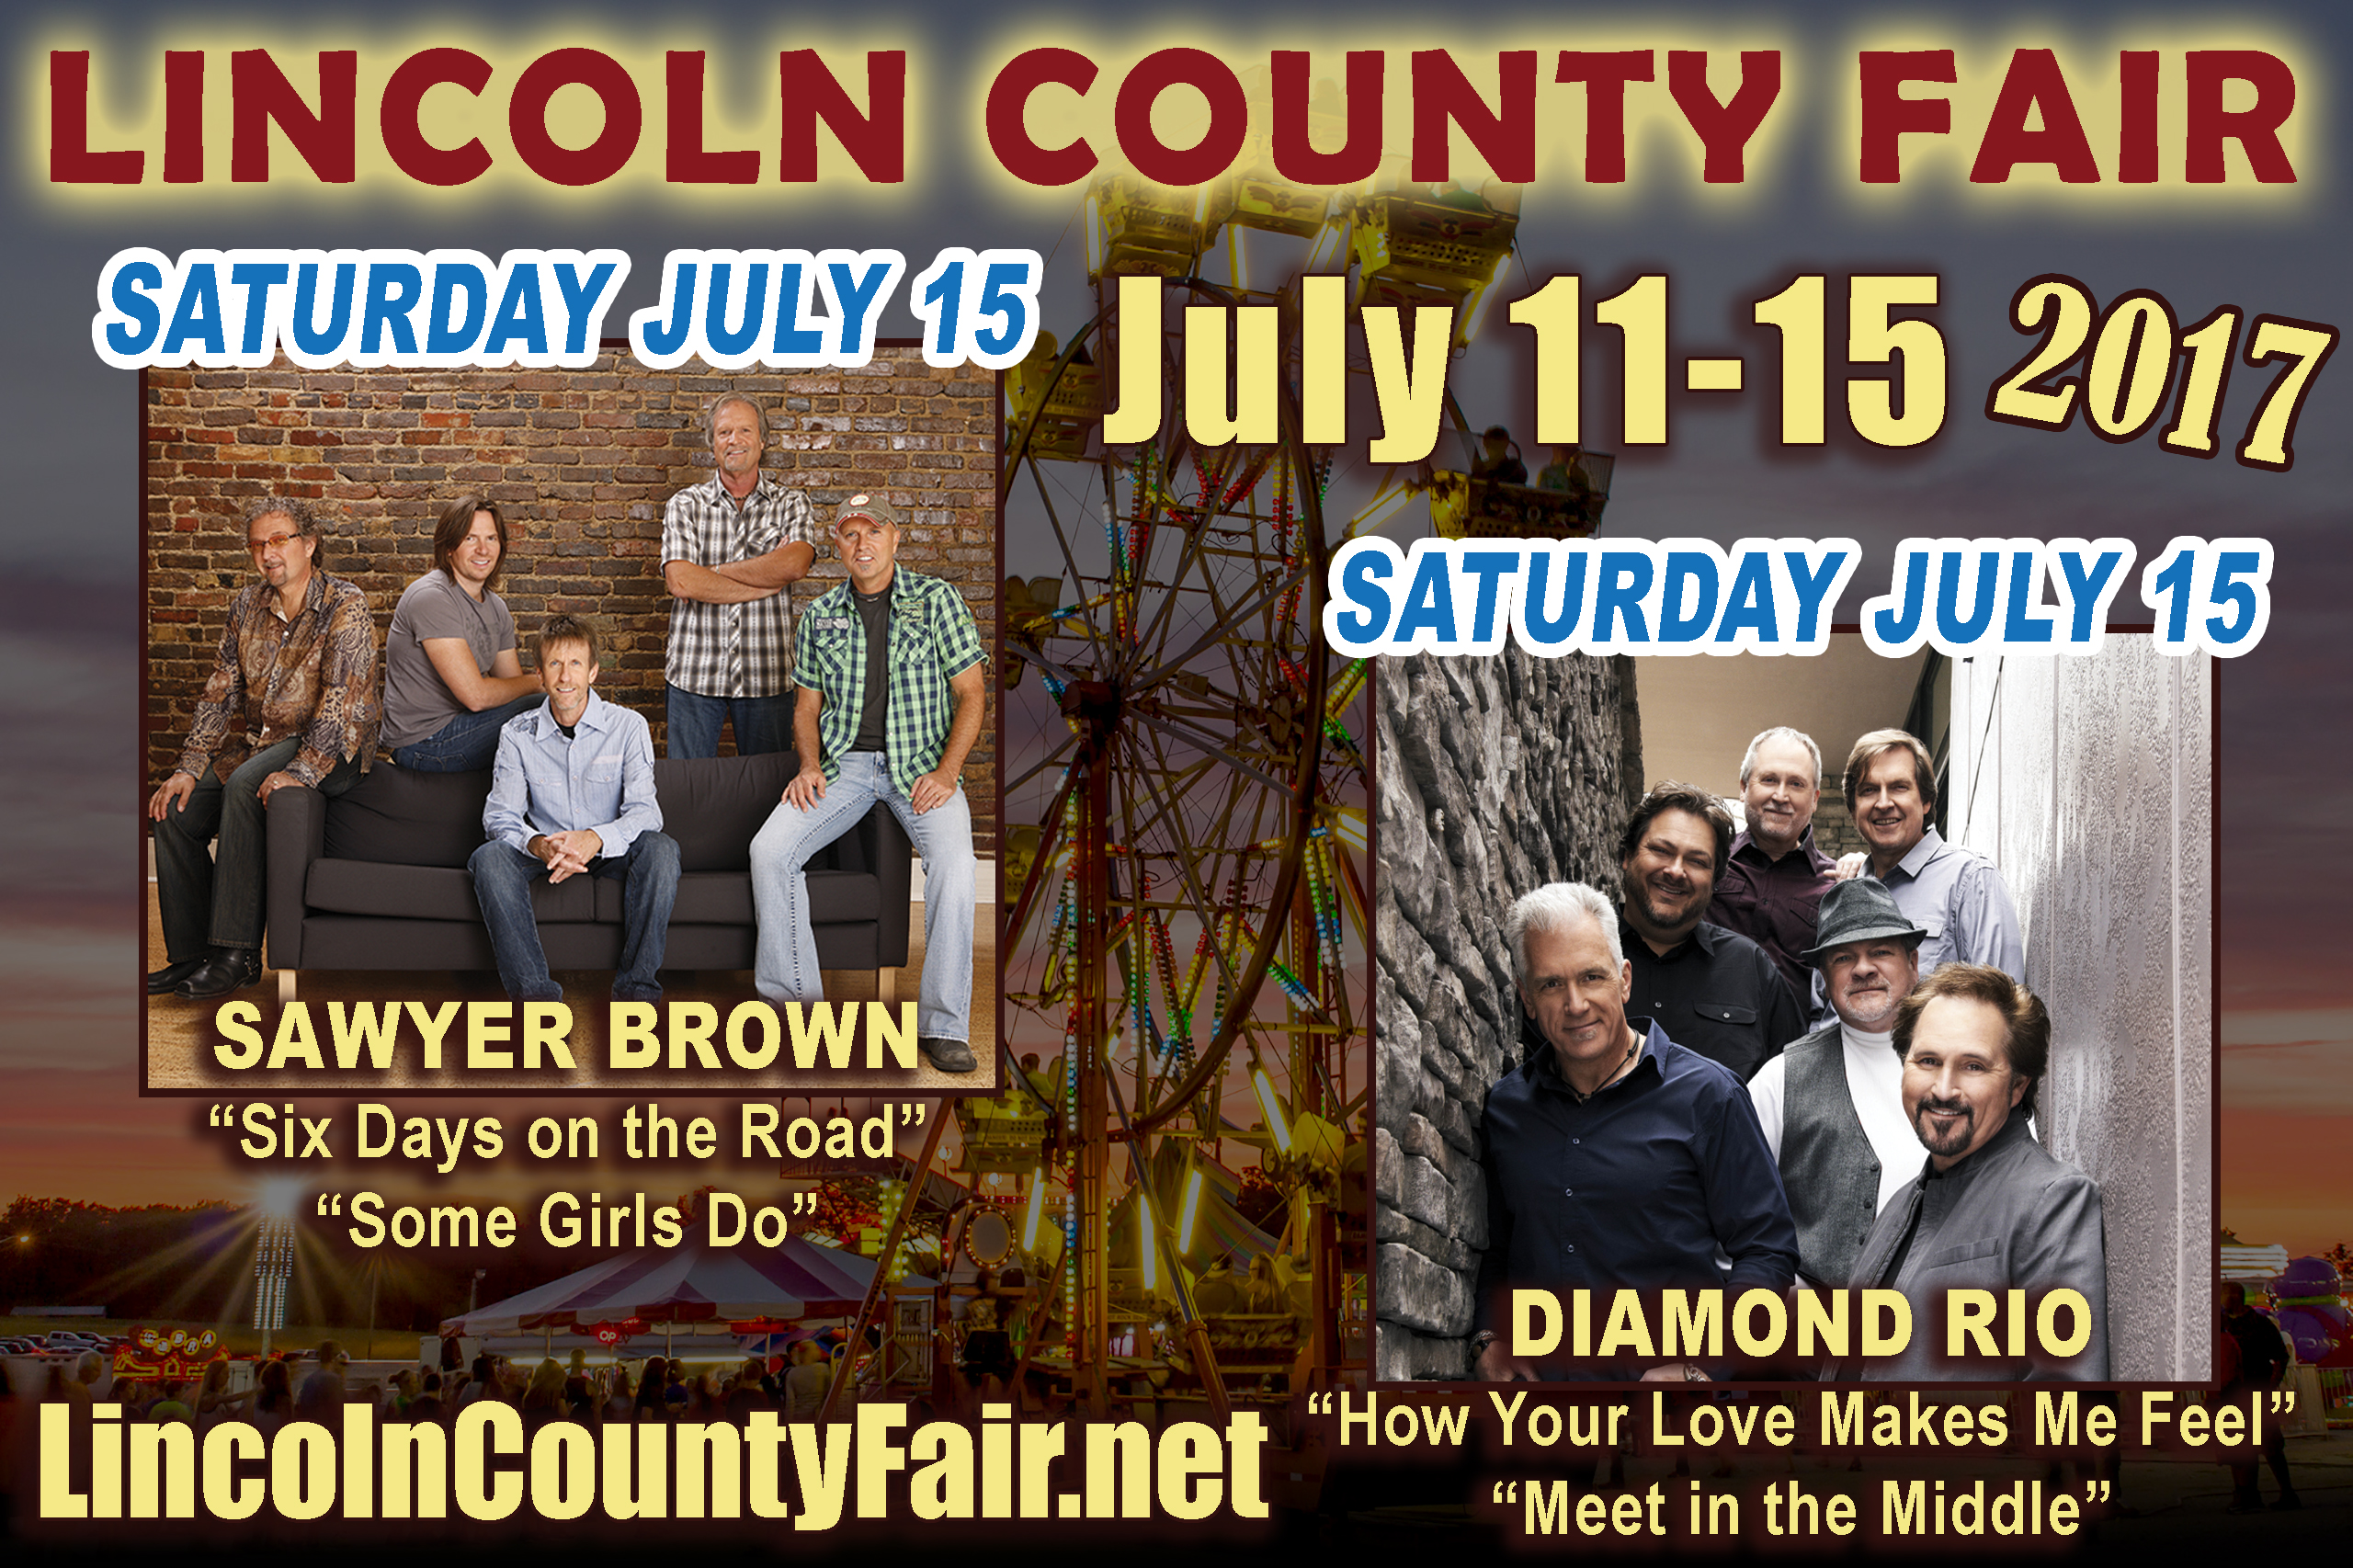 Welcome Diamond Rio & Sawyer Brown!